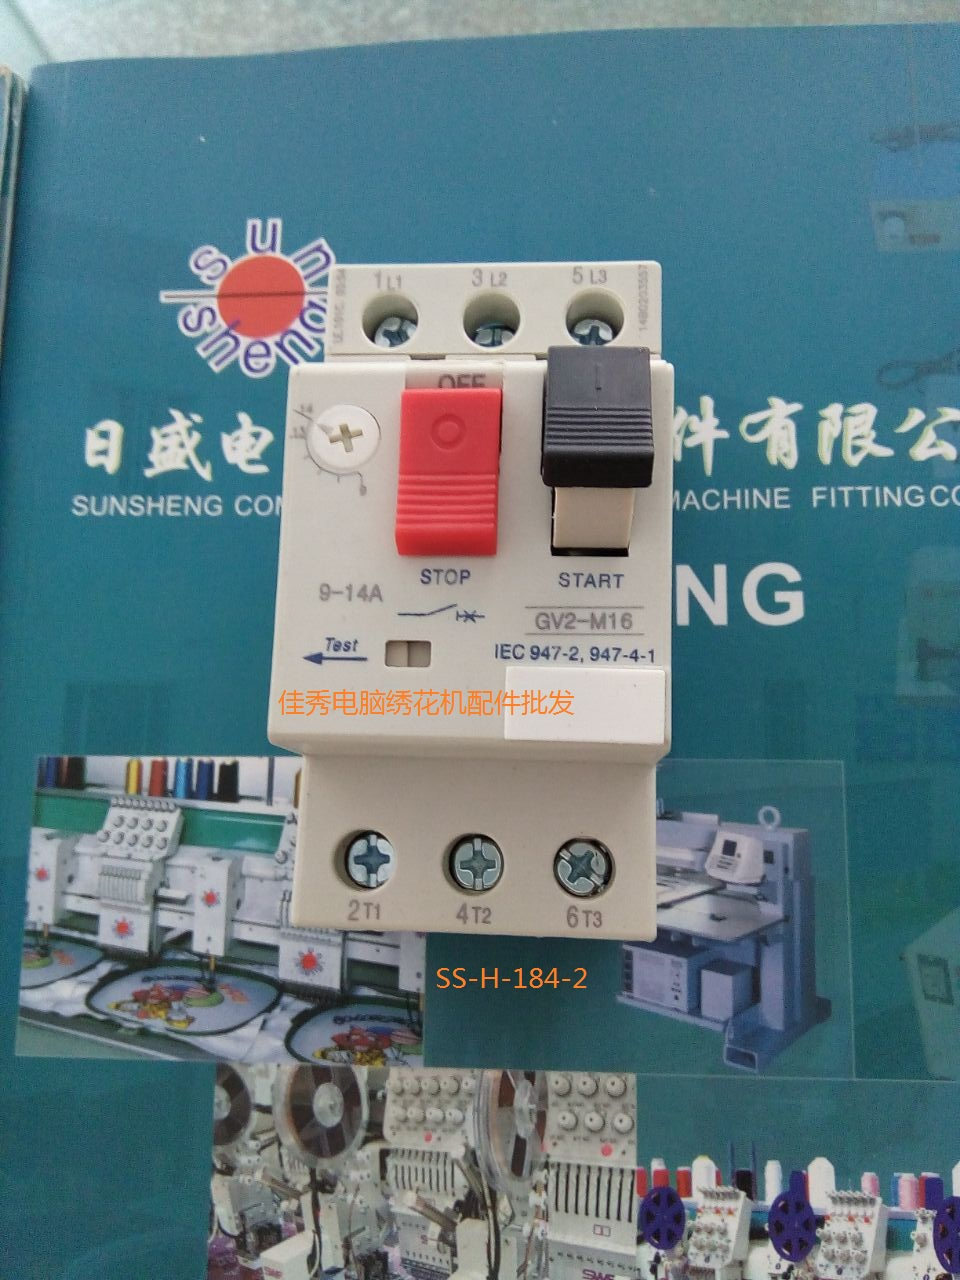 Computer embroidery machine parts - centrifugal switch, electronic control box switch SS-H-184-2